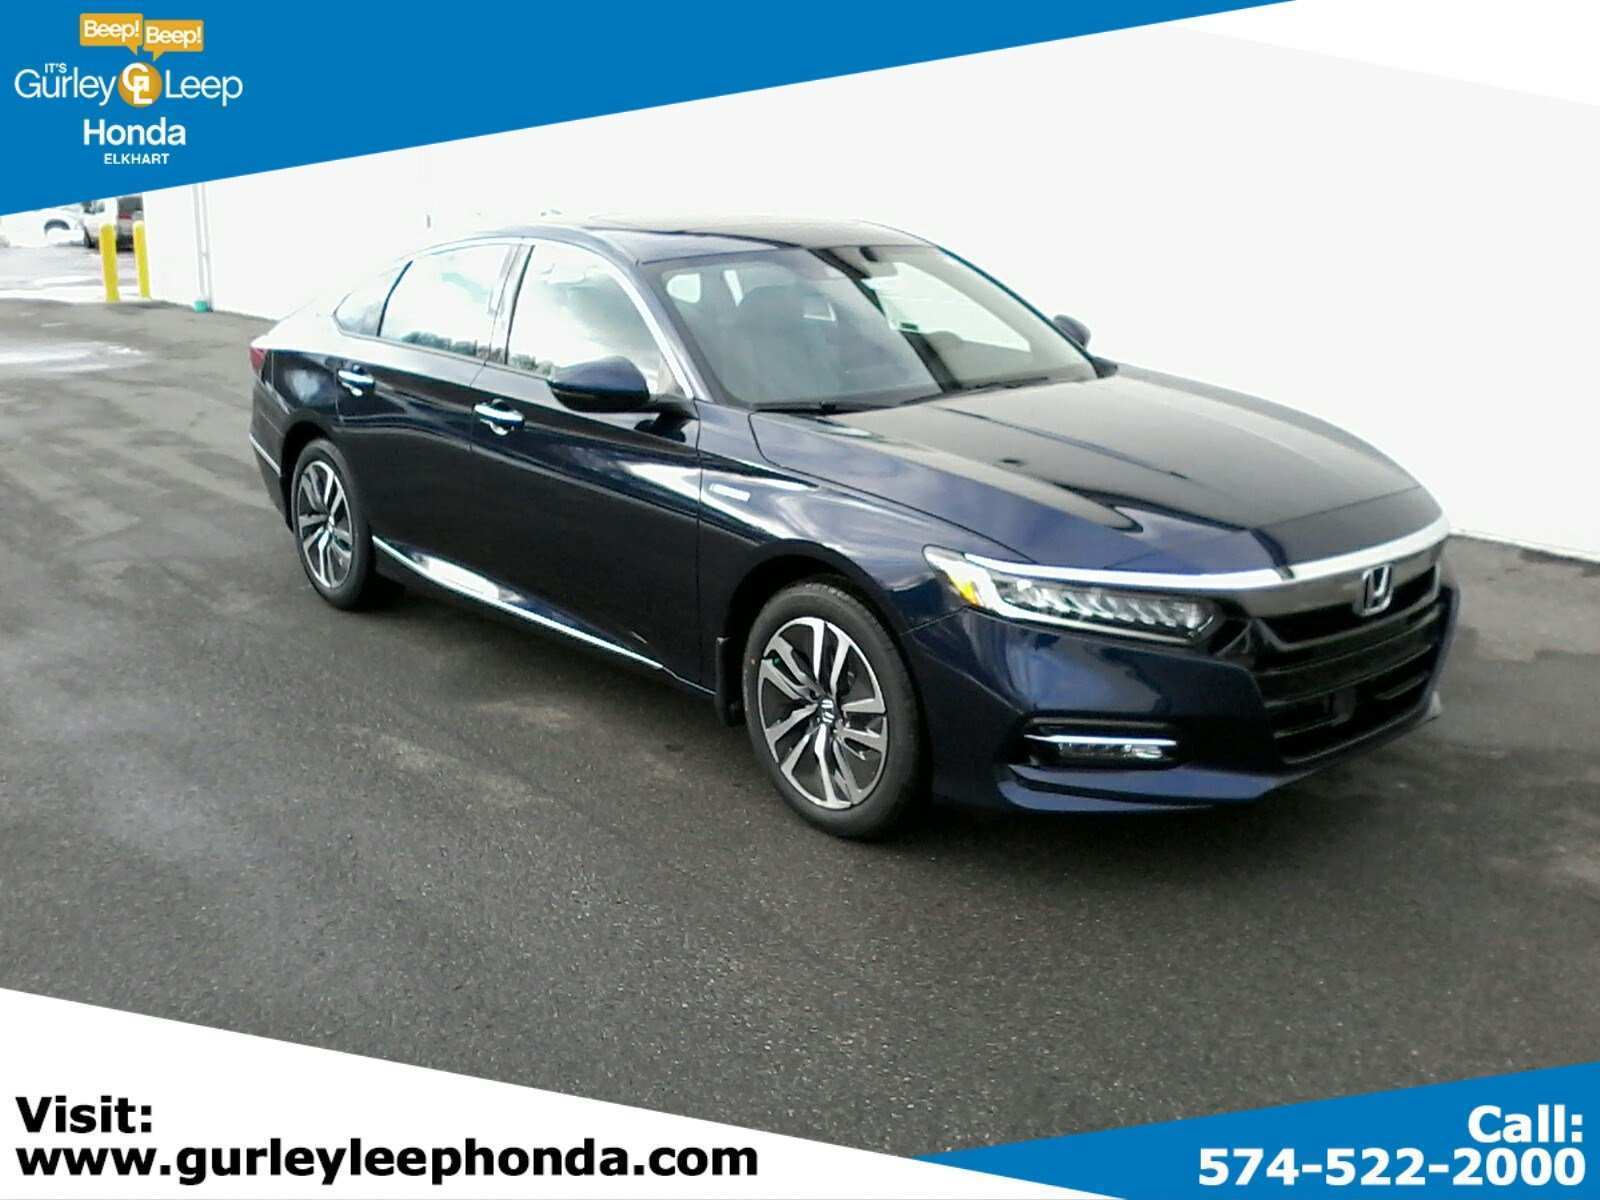 40 All New 2019 Honda Accord Hybrid Price Design And Review